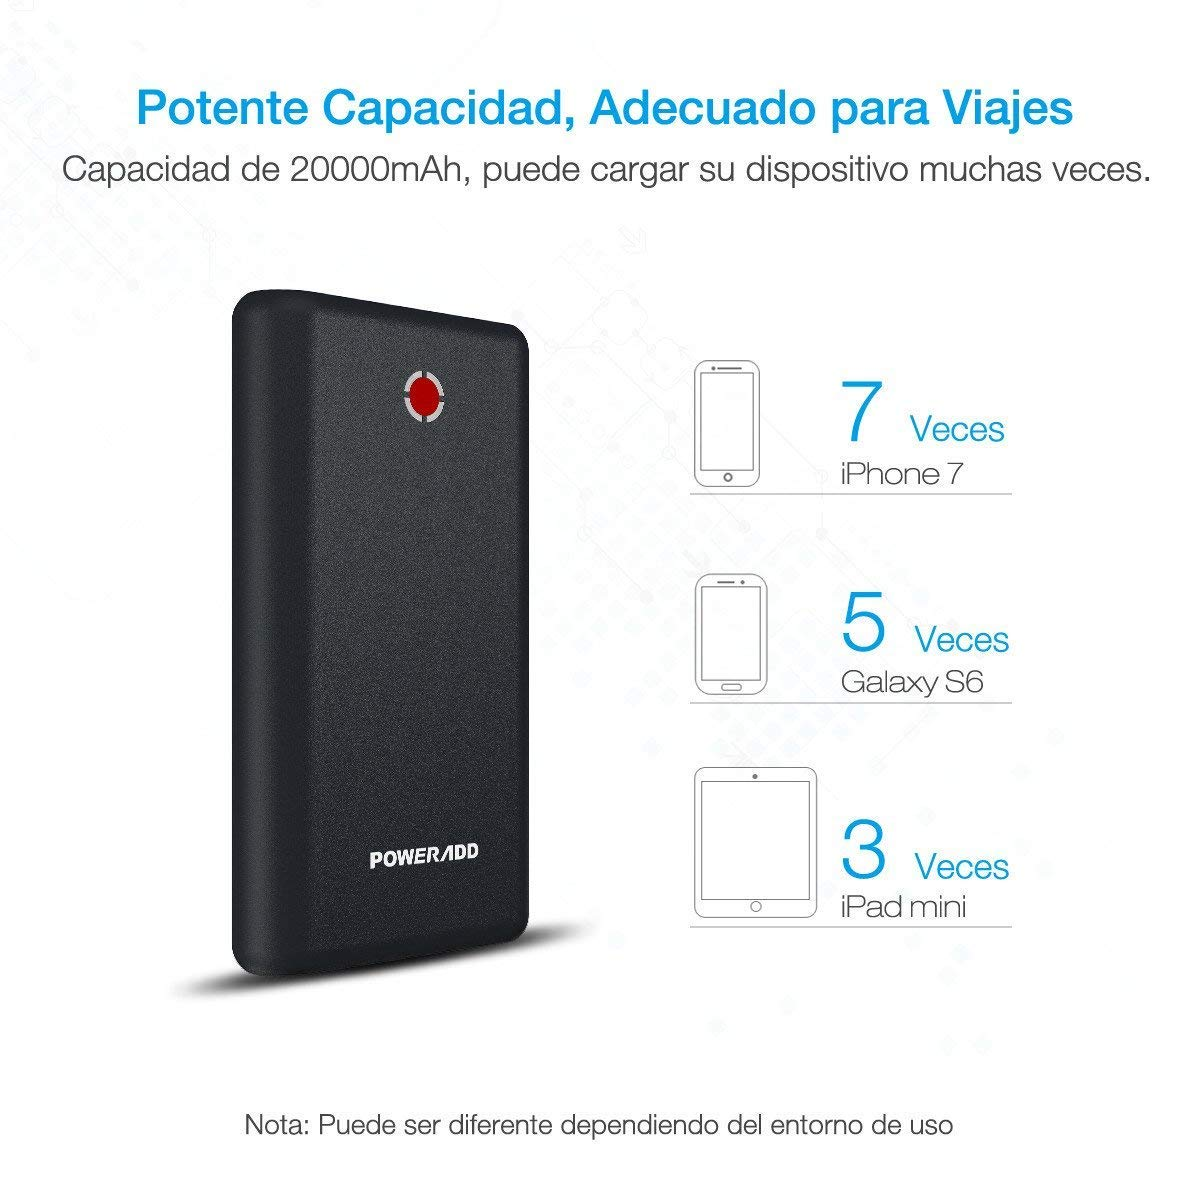 [Versión Mejorada] Poweradd Pilot X7 20000mAh Cargador Móvil Portátil Batería Externa Power Bank para iPhone iPad(Cable de Apple no Incluido) Dispositivos de Samsung y Más Reciente iPhone7 Color-Negro y Rojo